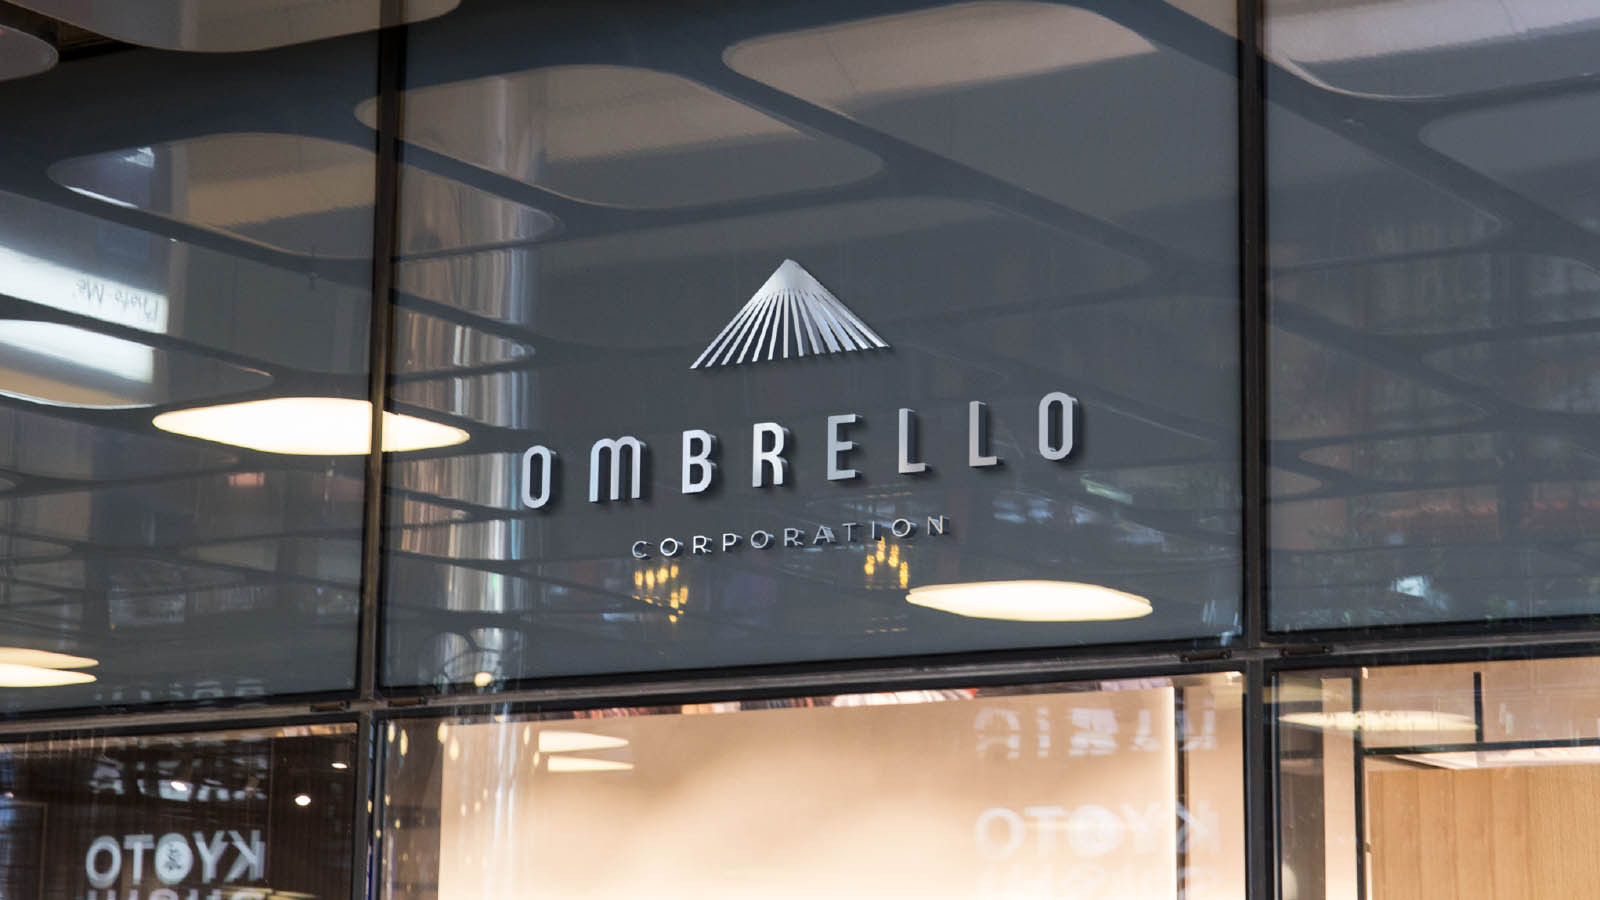 ombrello corporation diseño de logotipo mockup